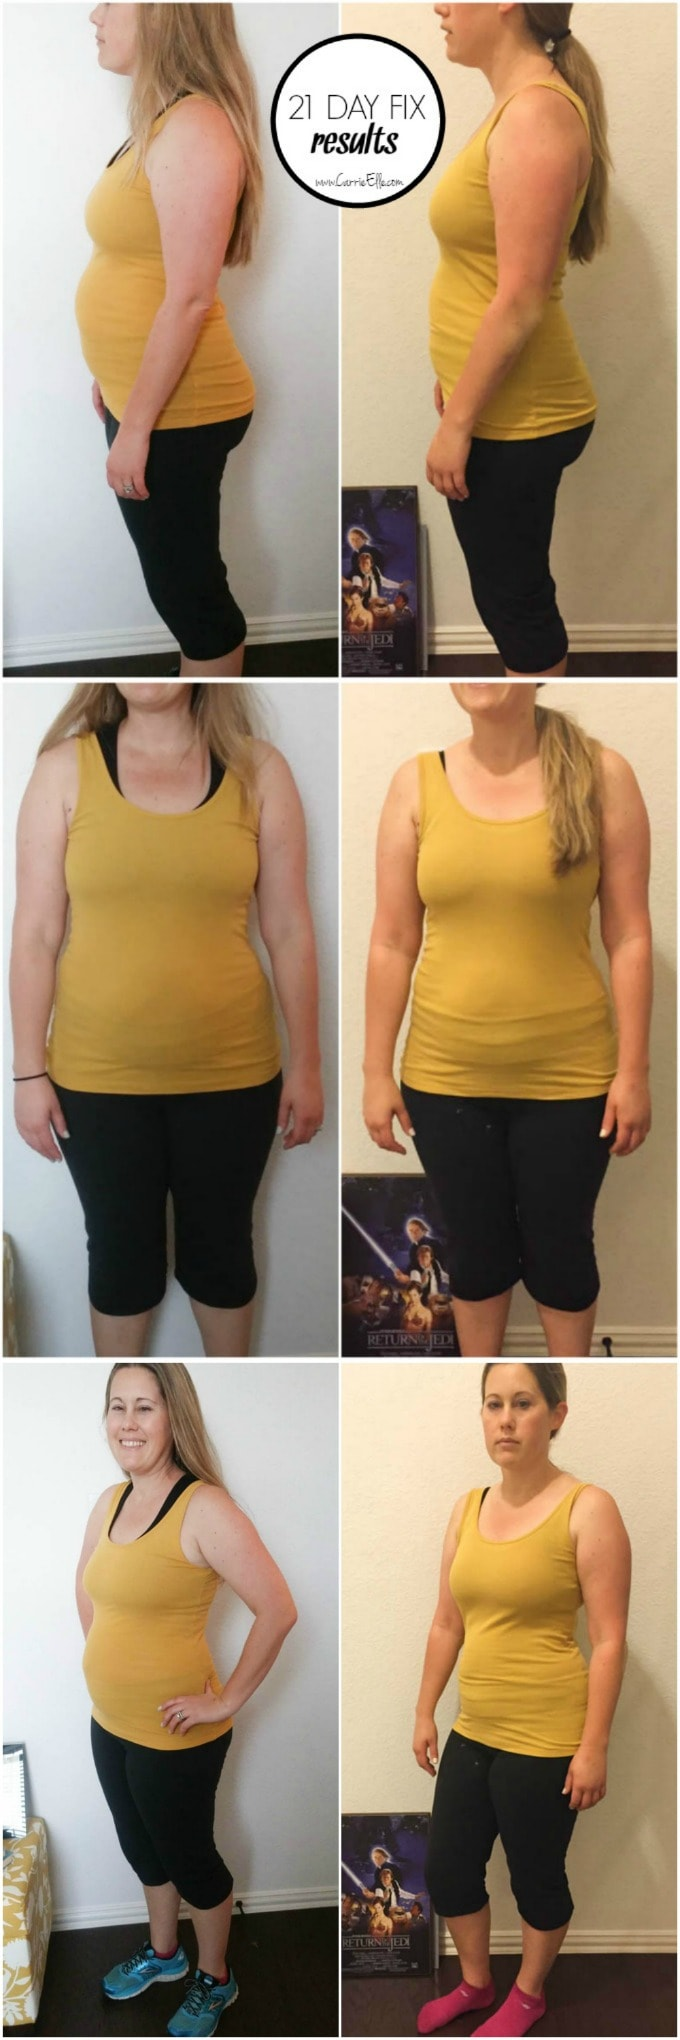 21 Day Fix Results First Round